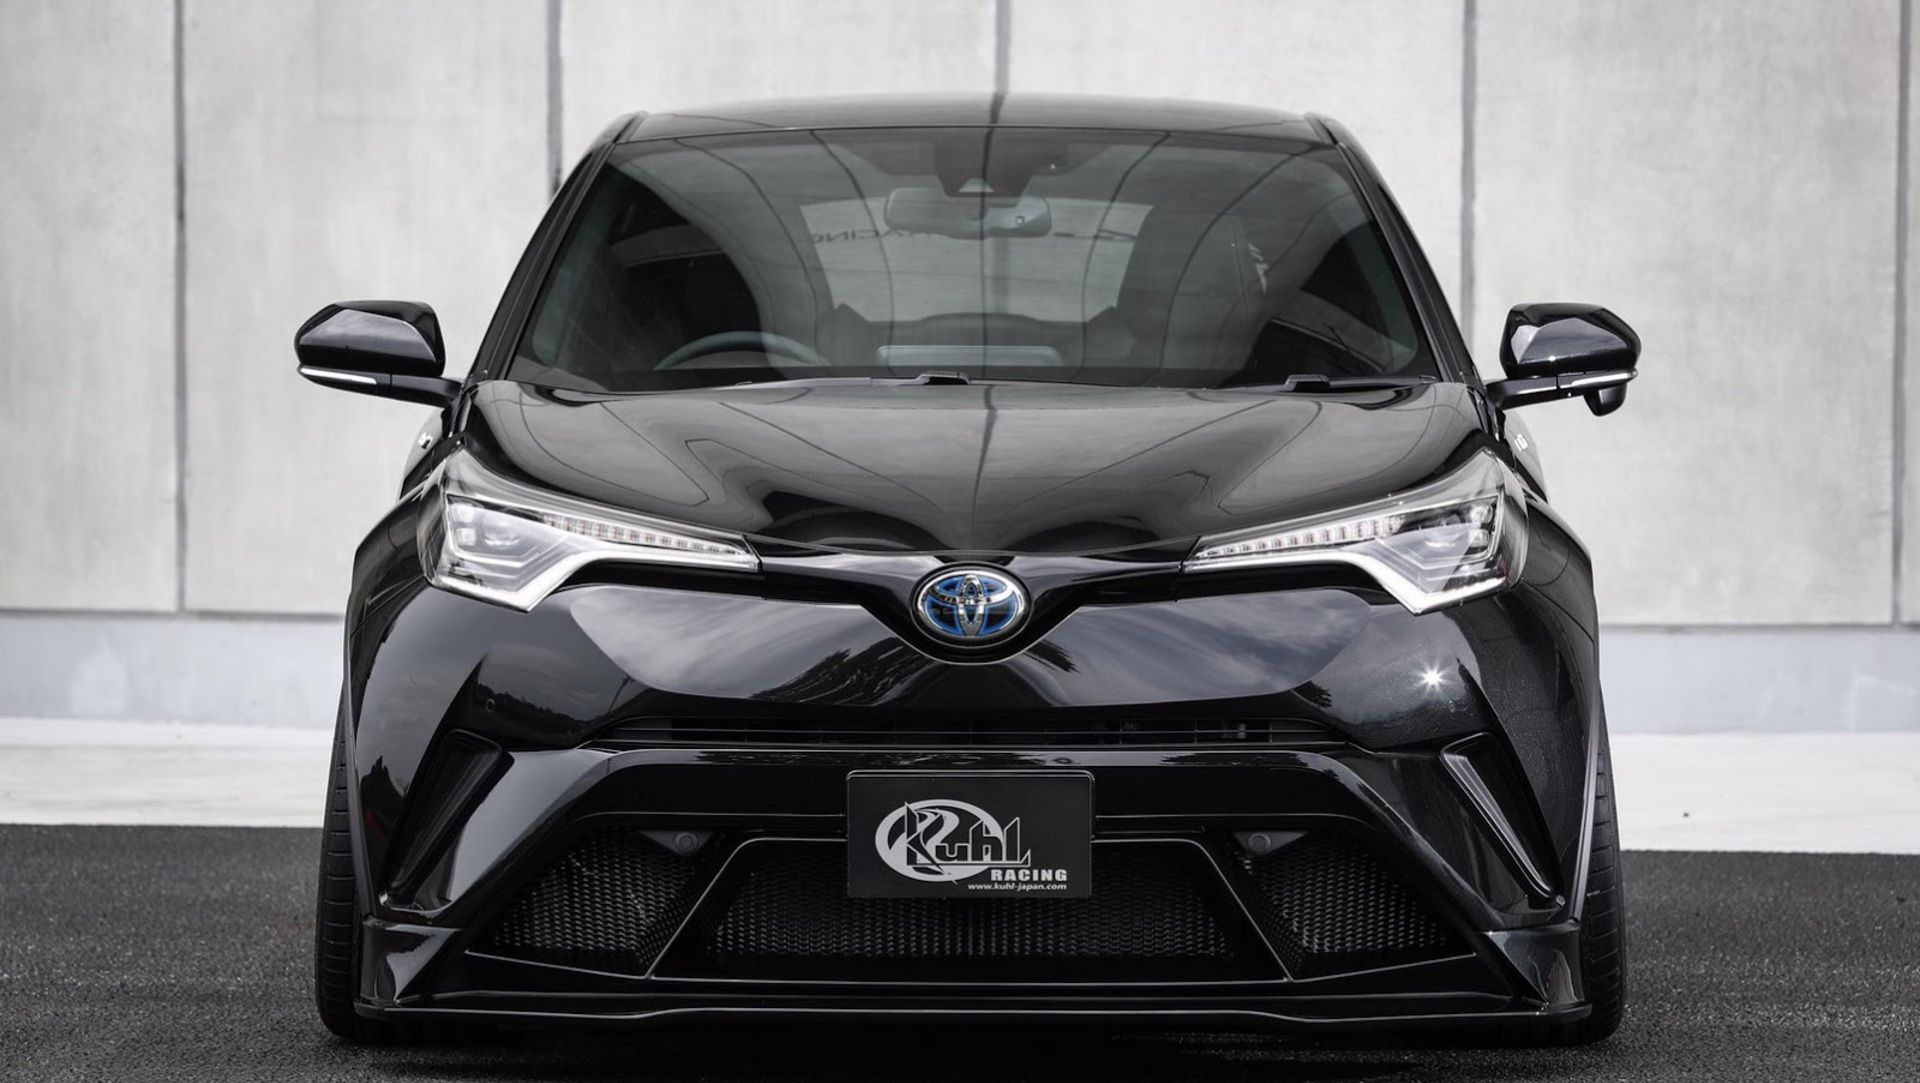 of toyota review spec c hr first crossover new motor official impressions watch car full